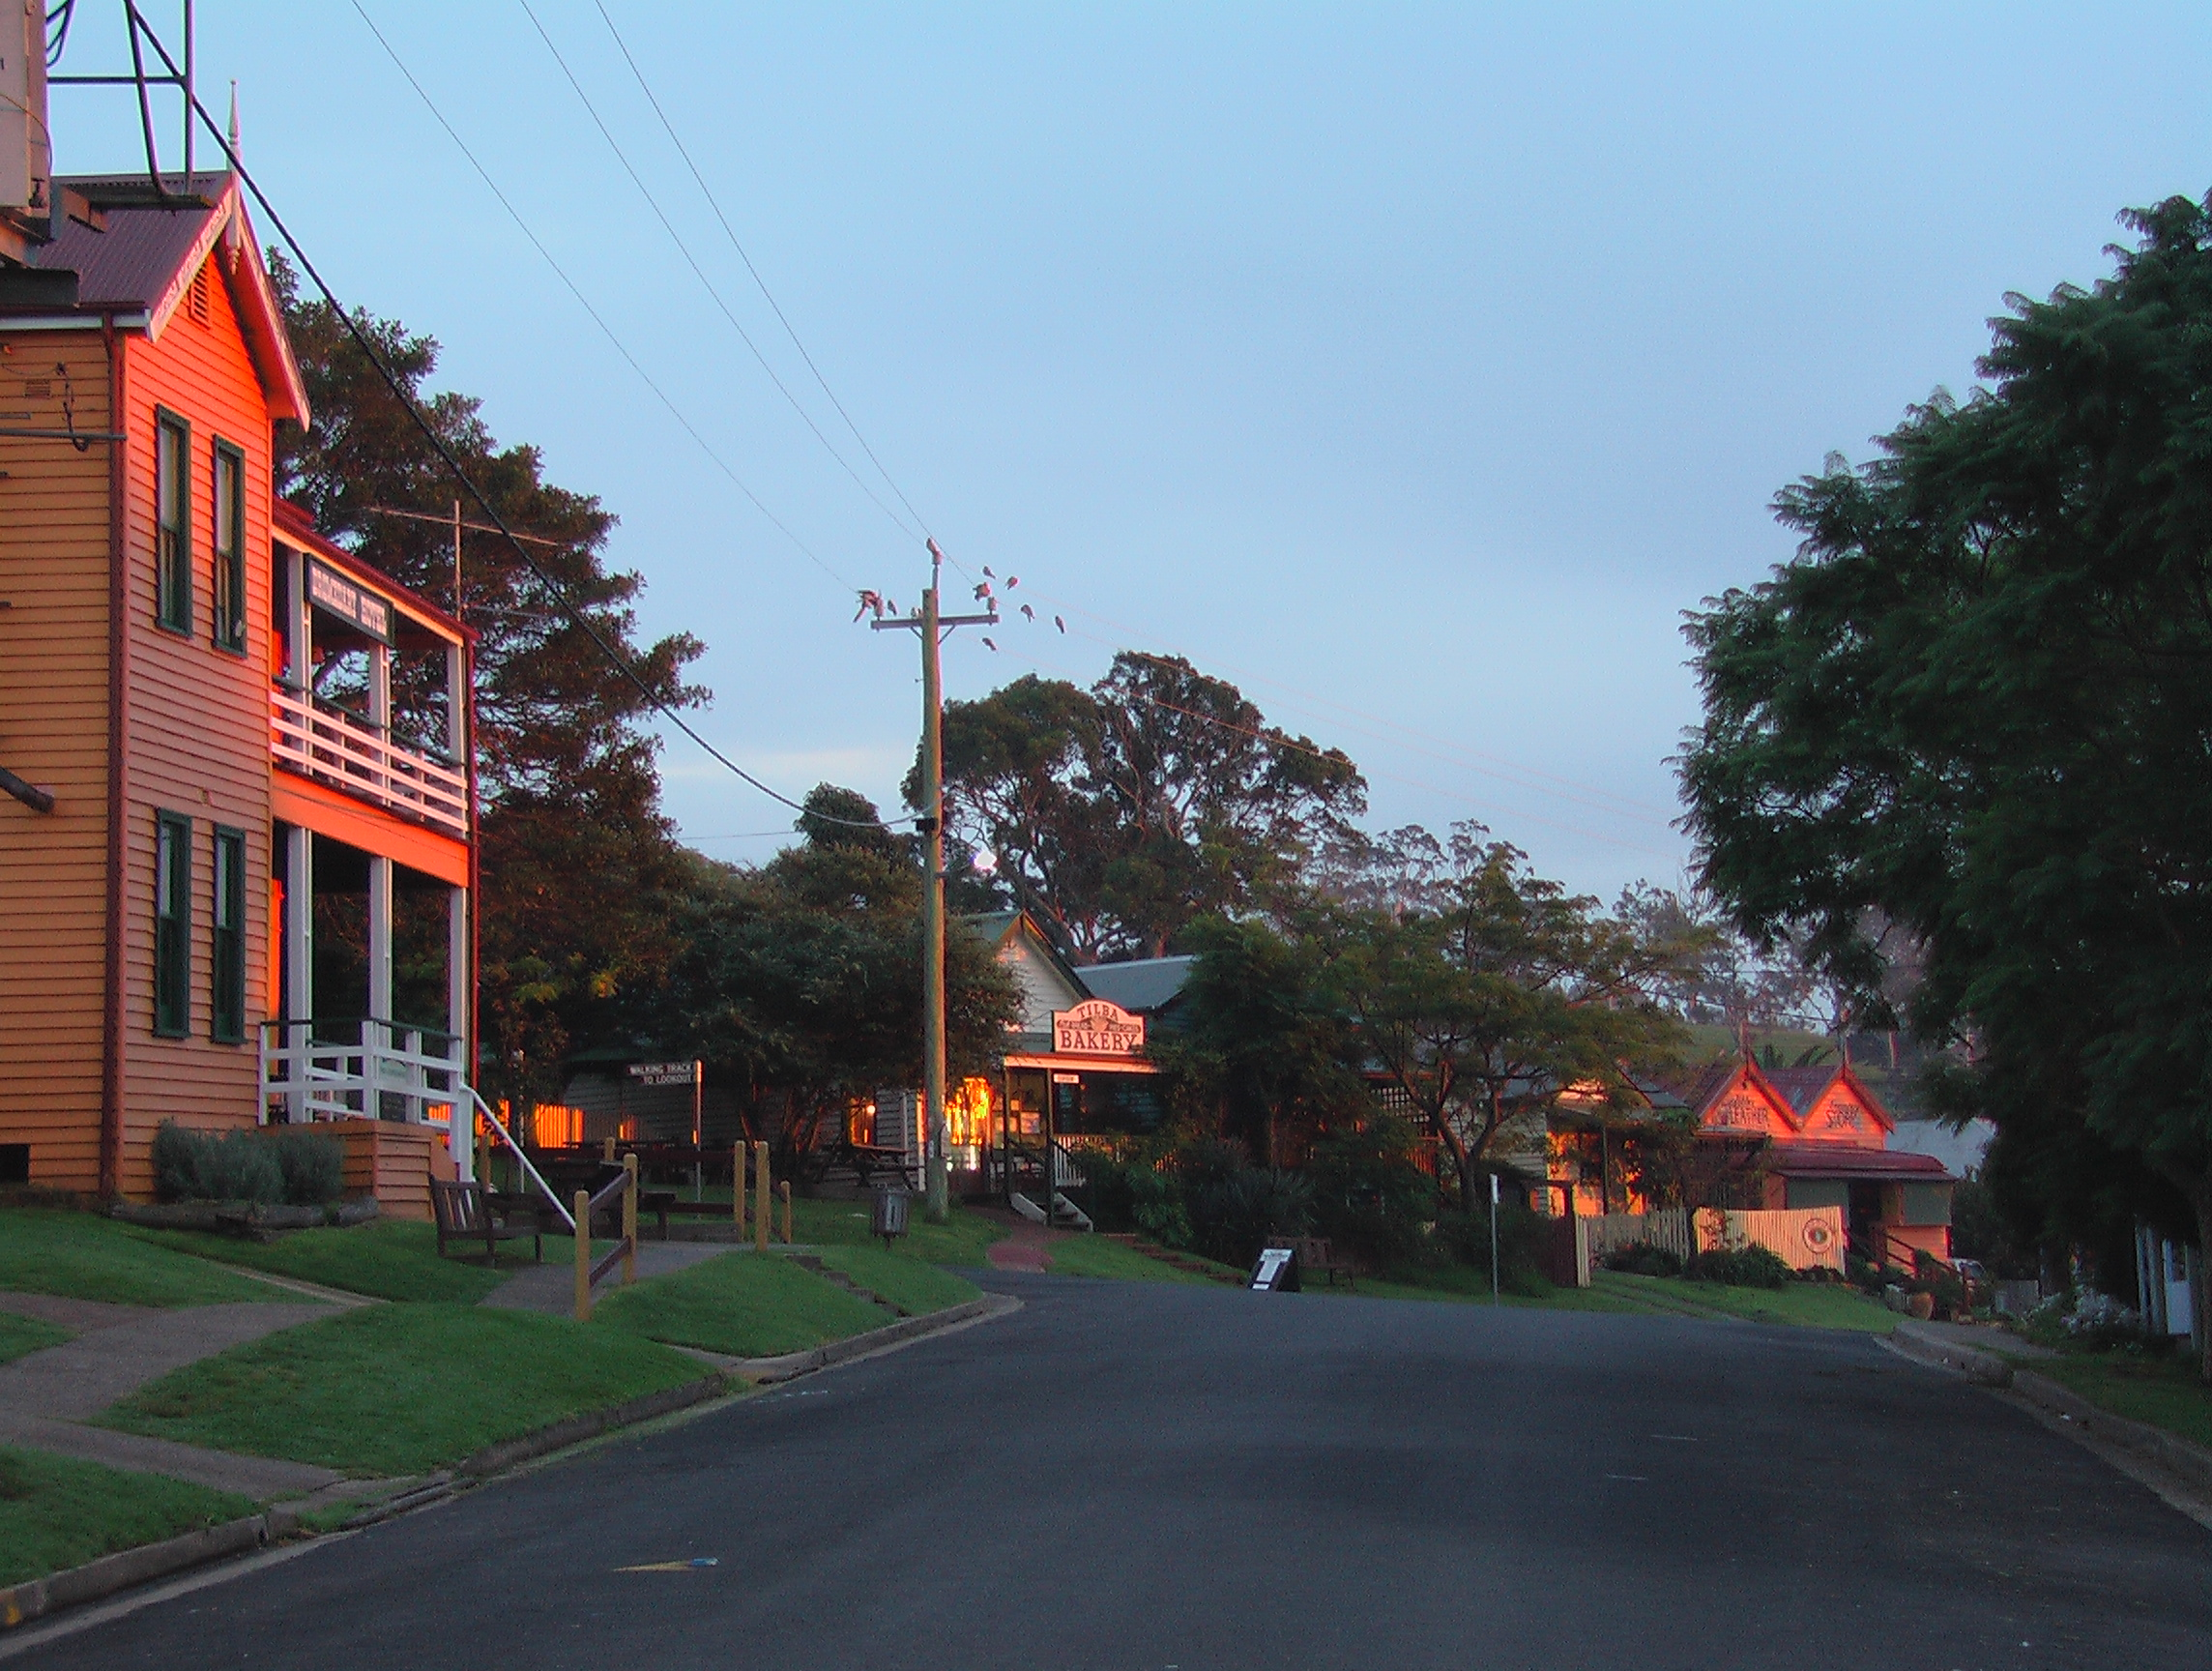 The iconic Dromedary Hotel (foreground) in Central Tilba